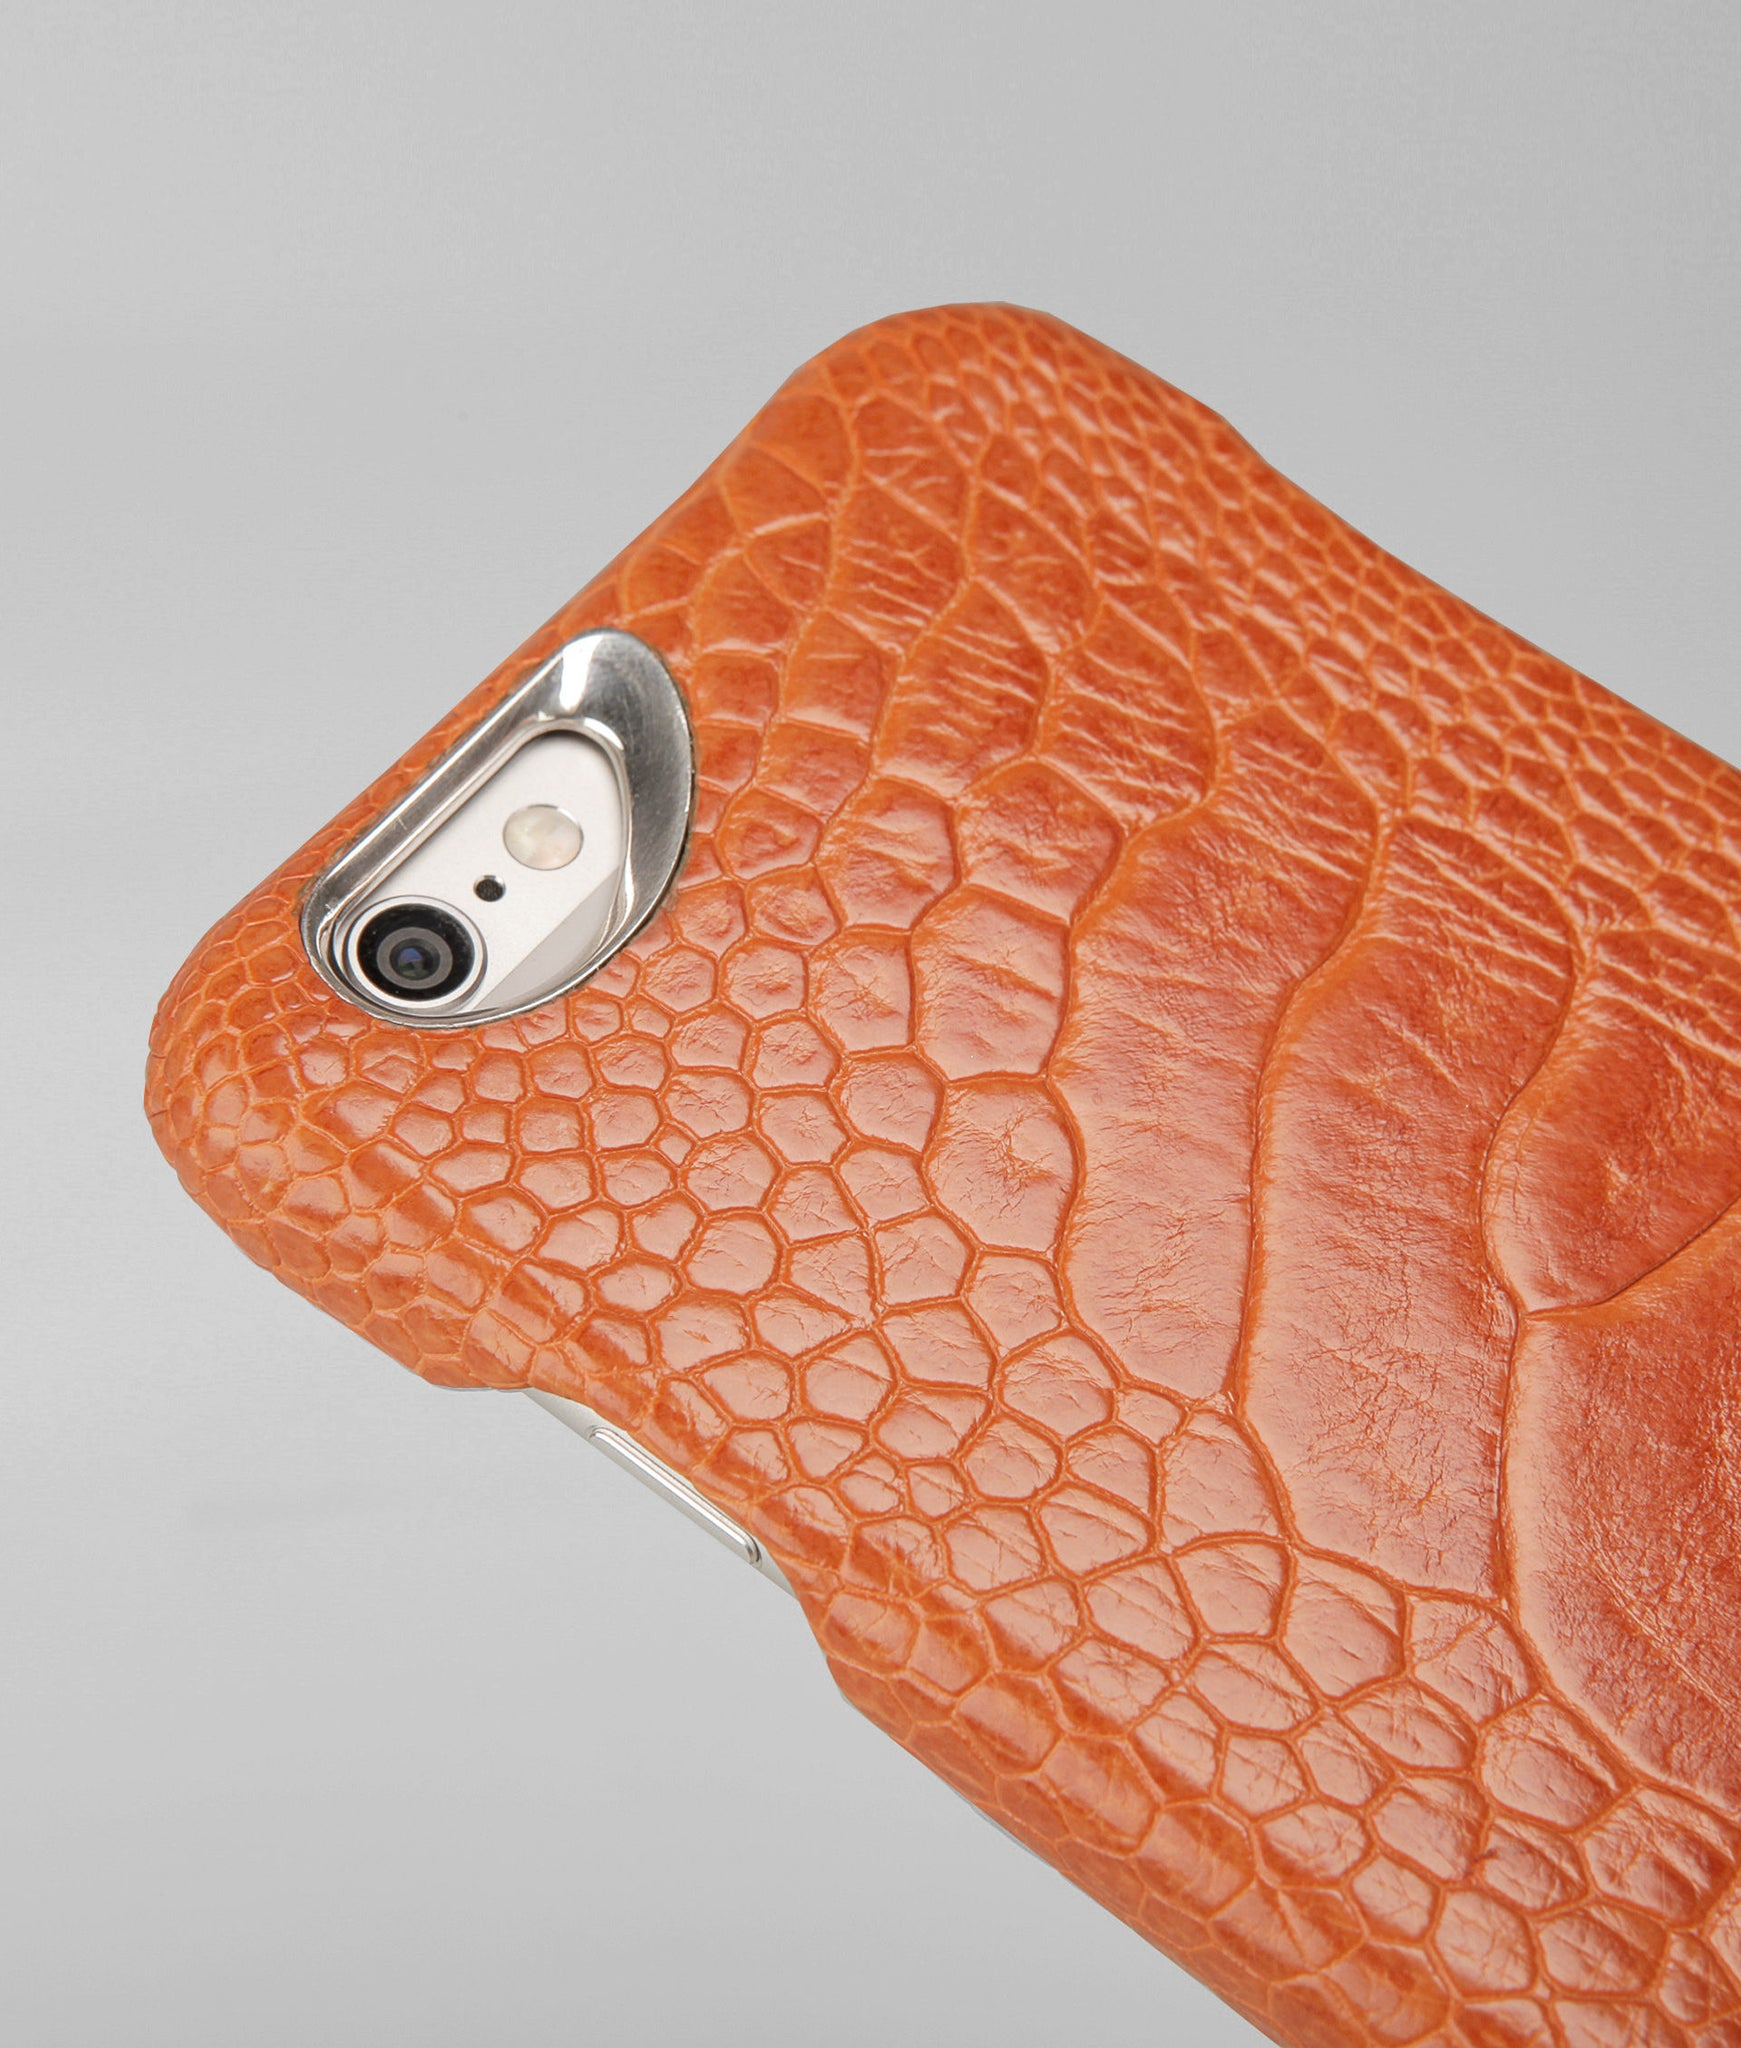 iPhone 6/6s Plus - Grip Struzzo Leather Case